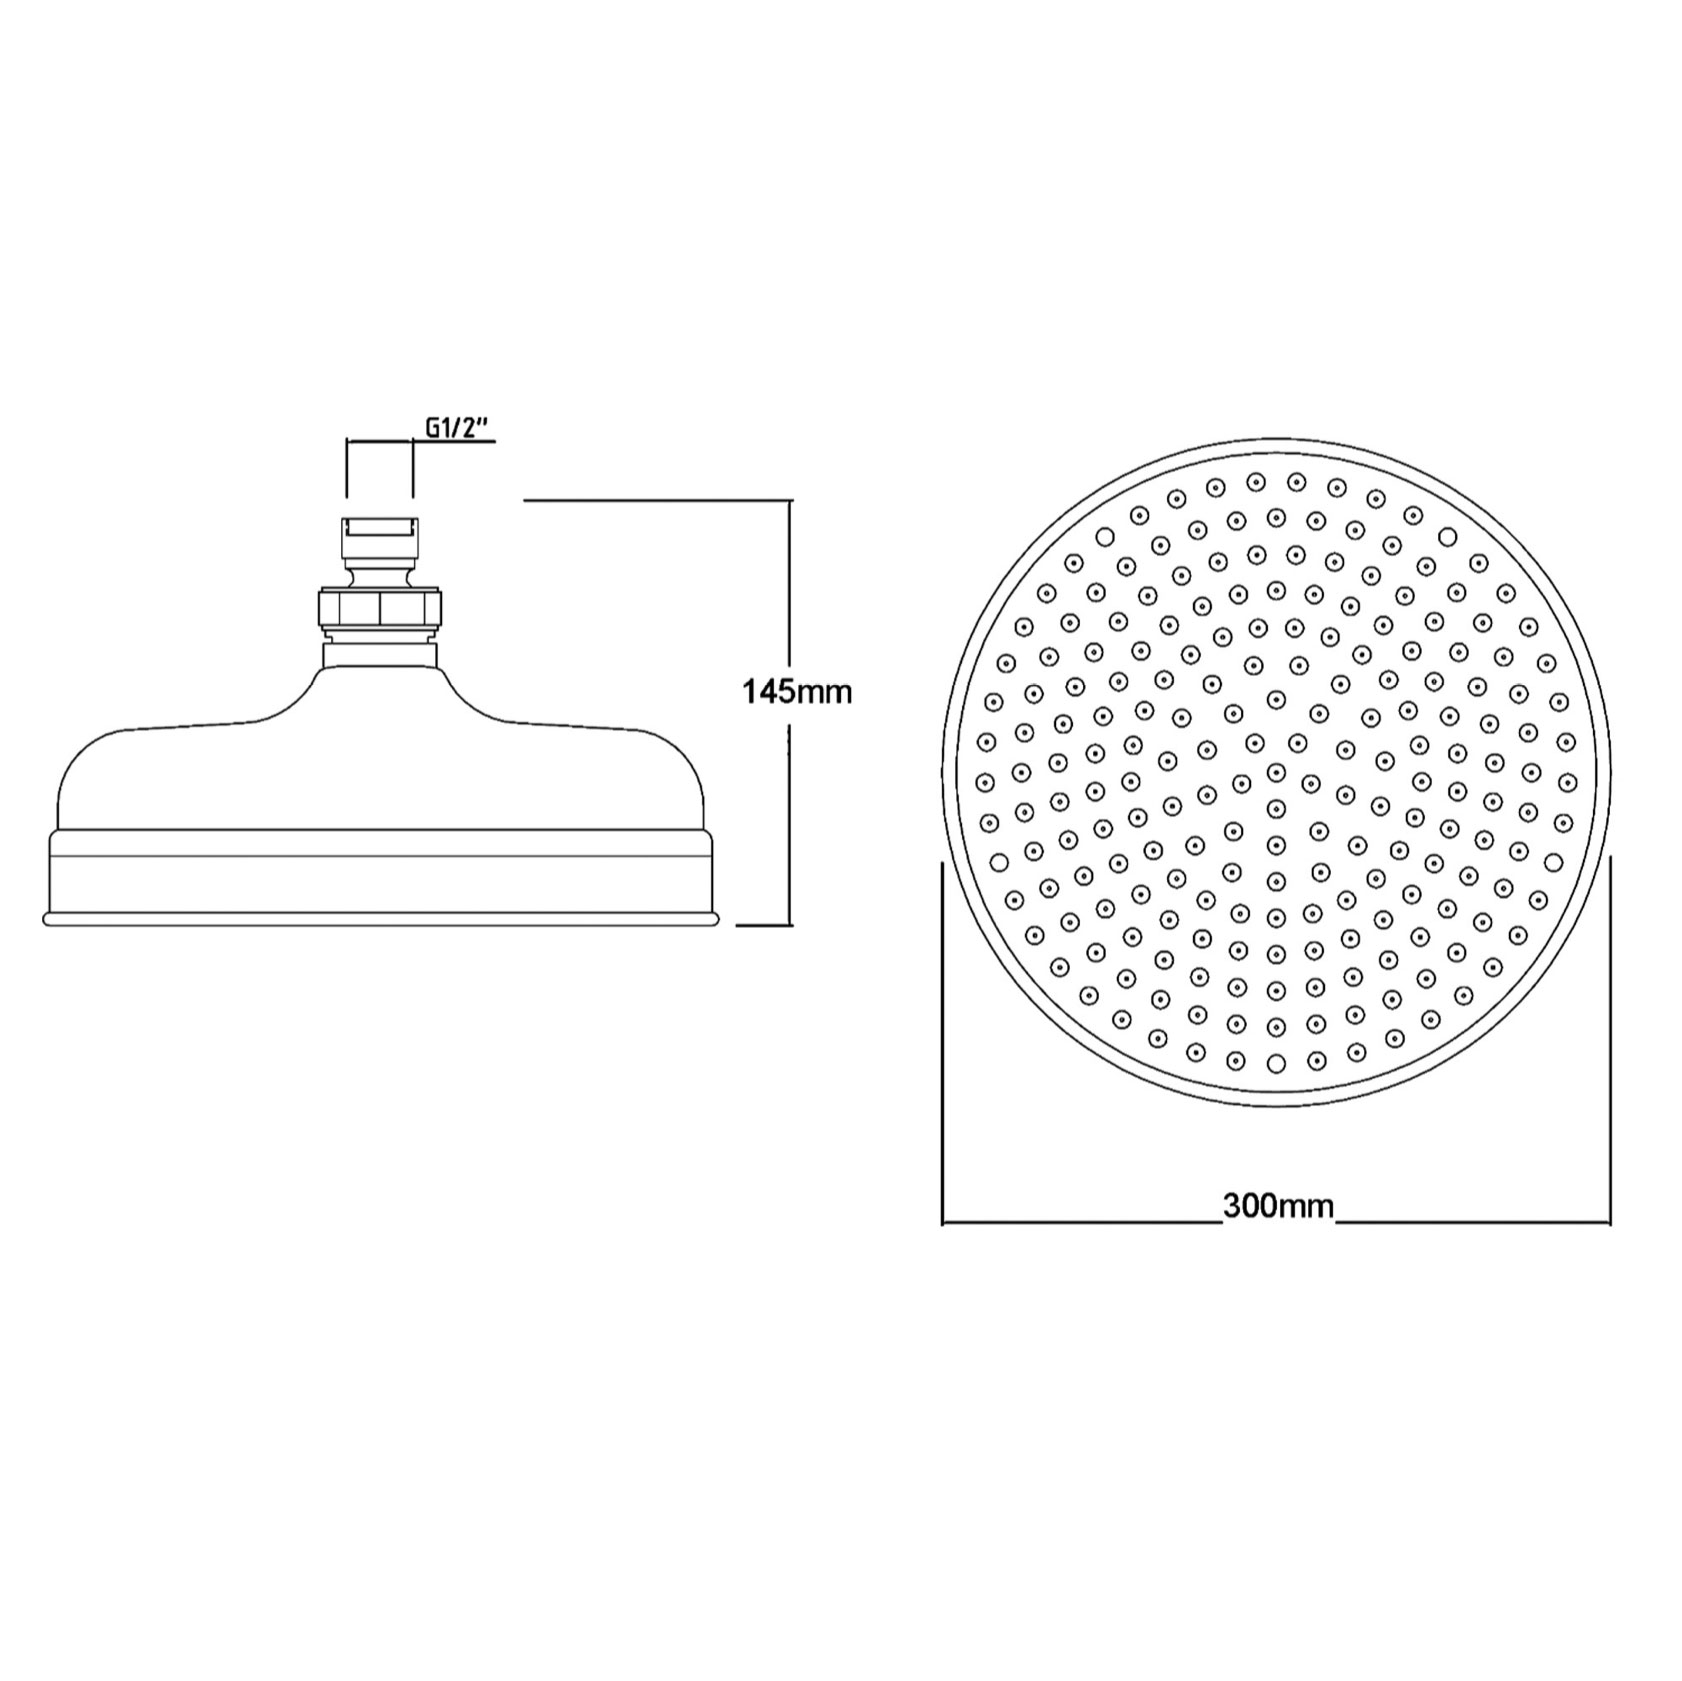 Bathwaters Technical BC Designs Victrion 12 inch Shower Head